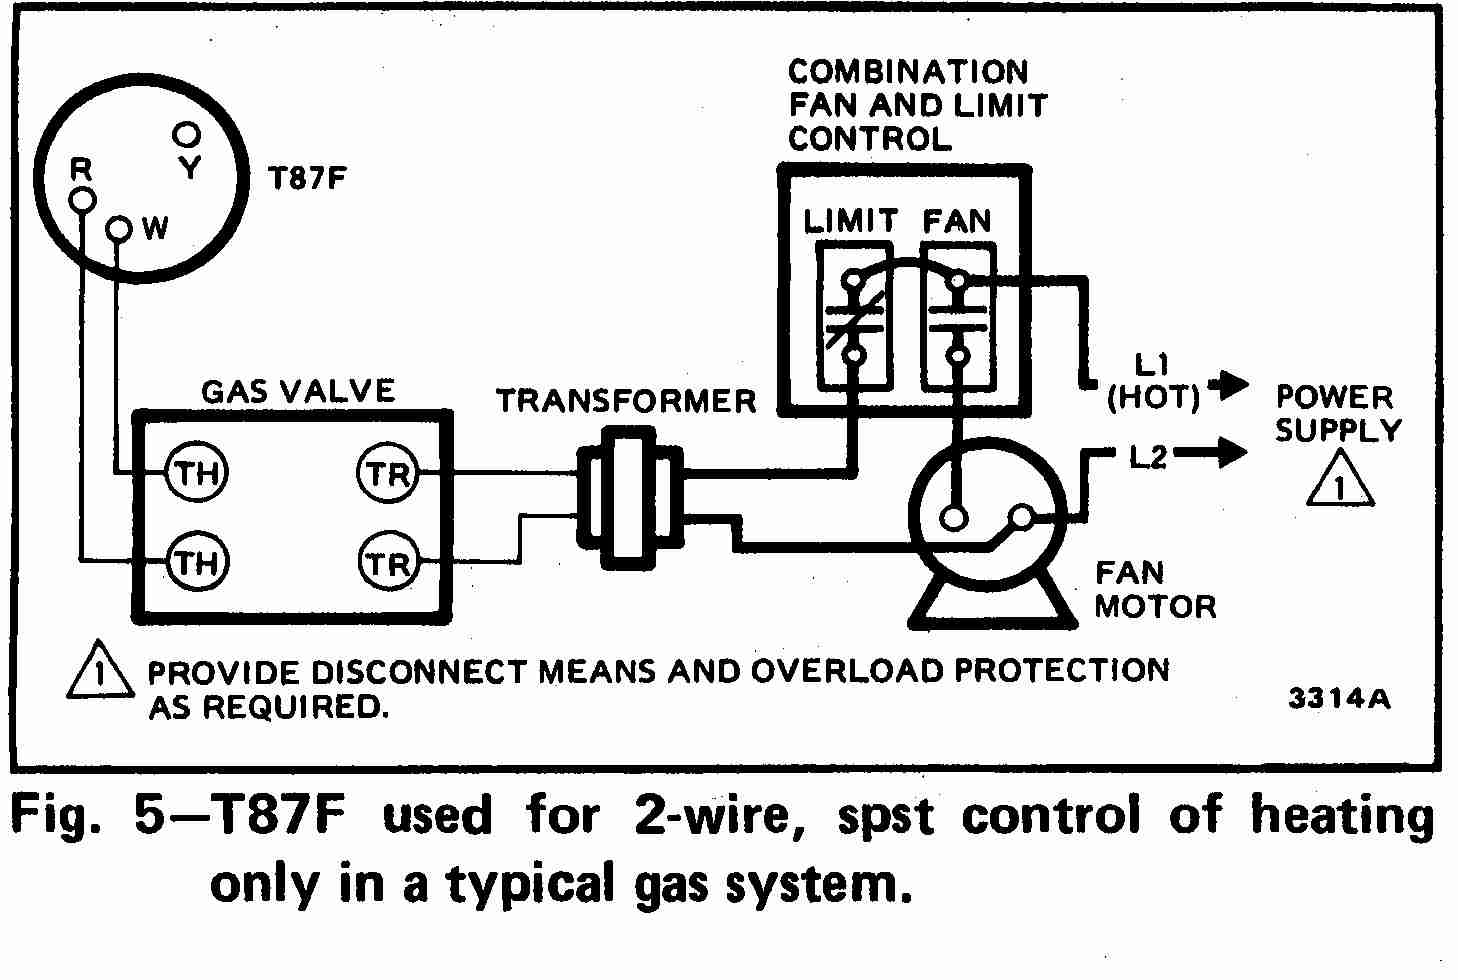 TT_T87F_0002_2Wg_DJF space heater wiring diagram s700 electric heater wire diagram Basic Outlet Wiring Diagrams at readyjetset.co